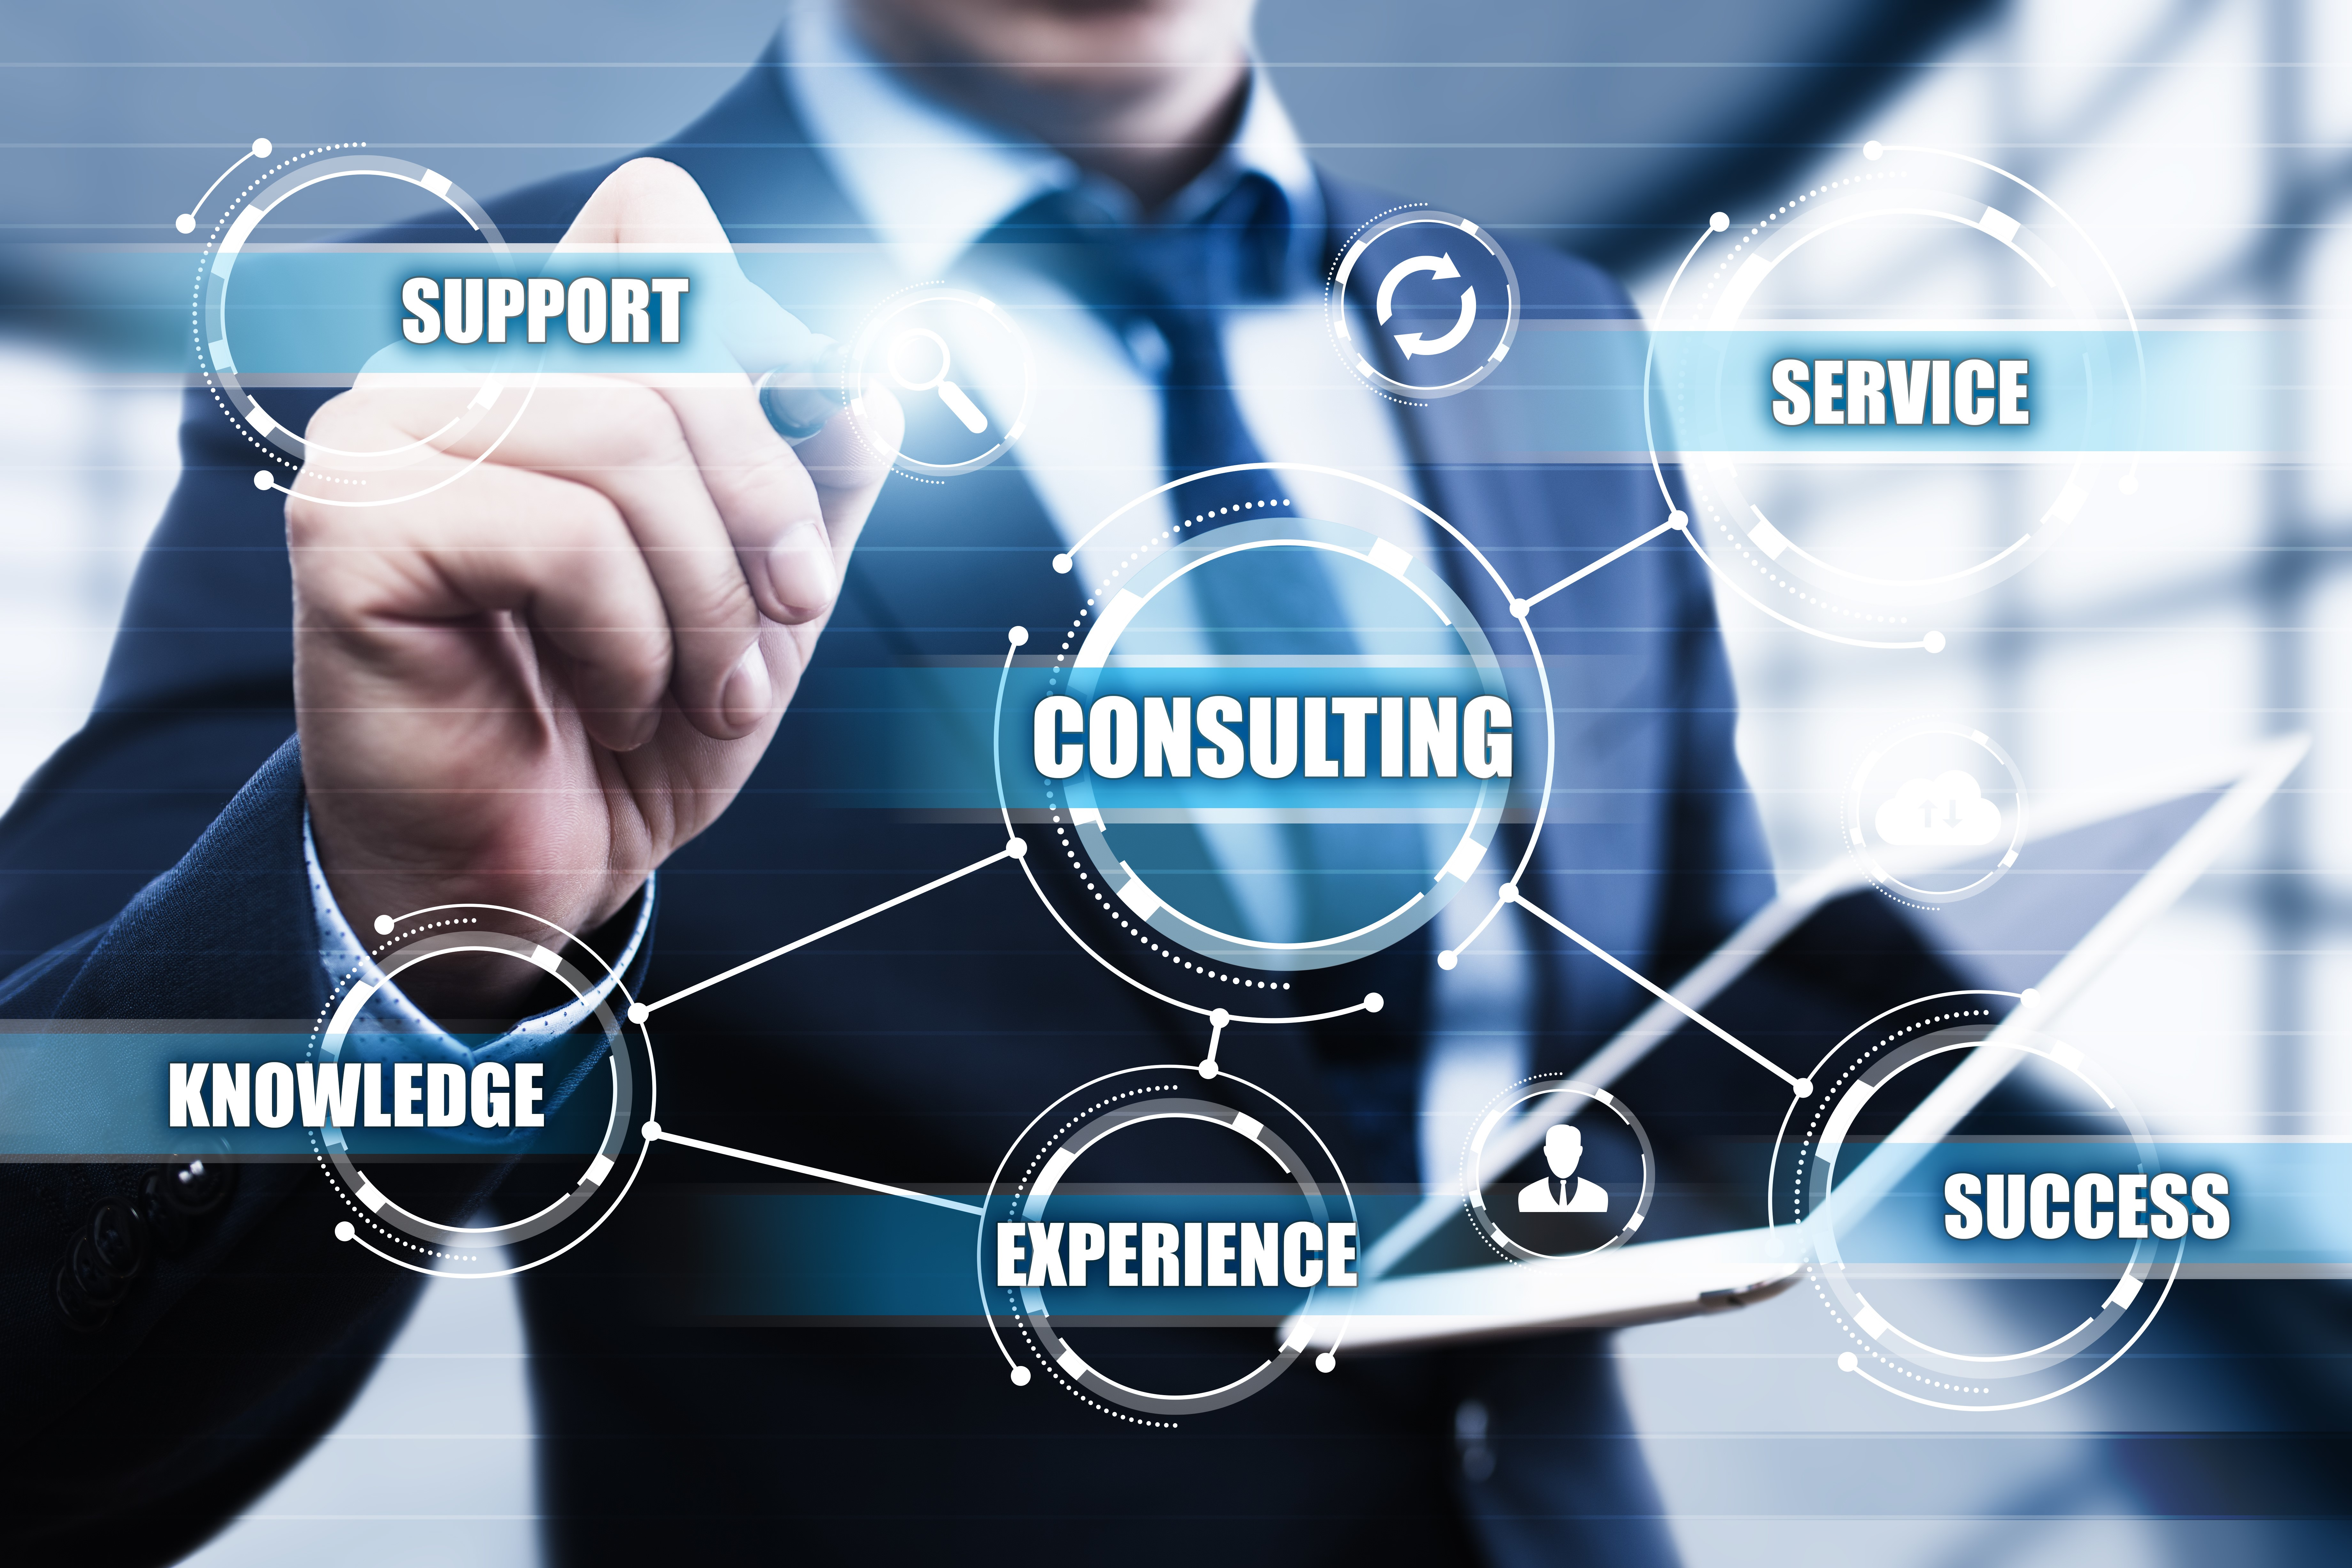 How Are We Relevant for consulting Service